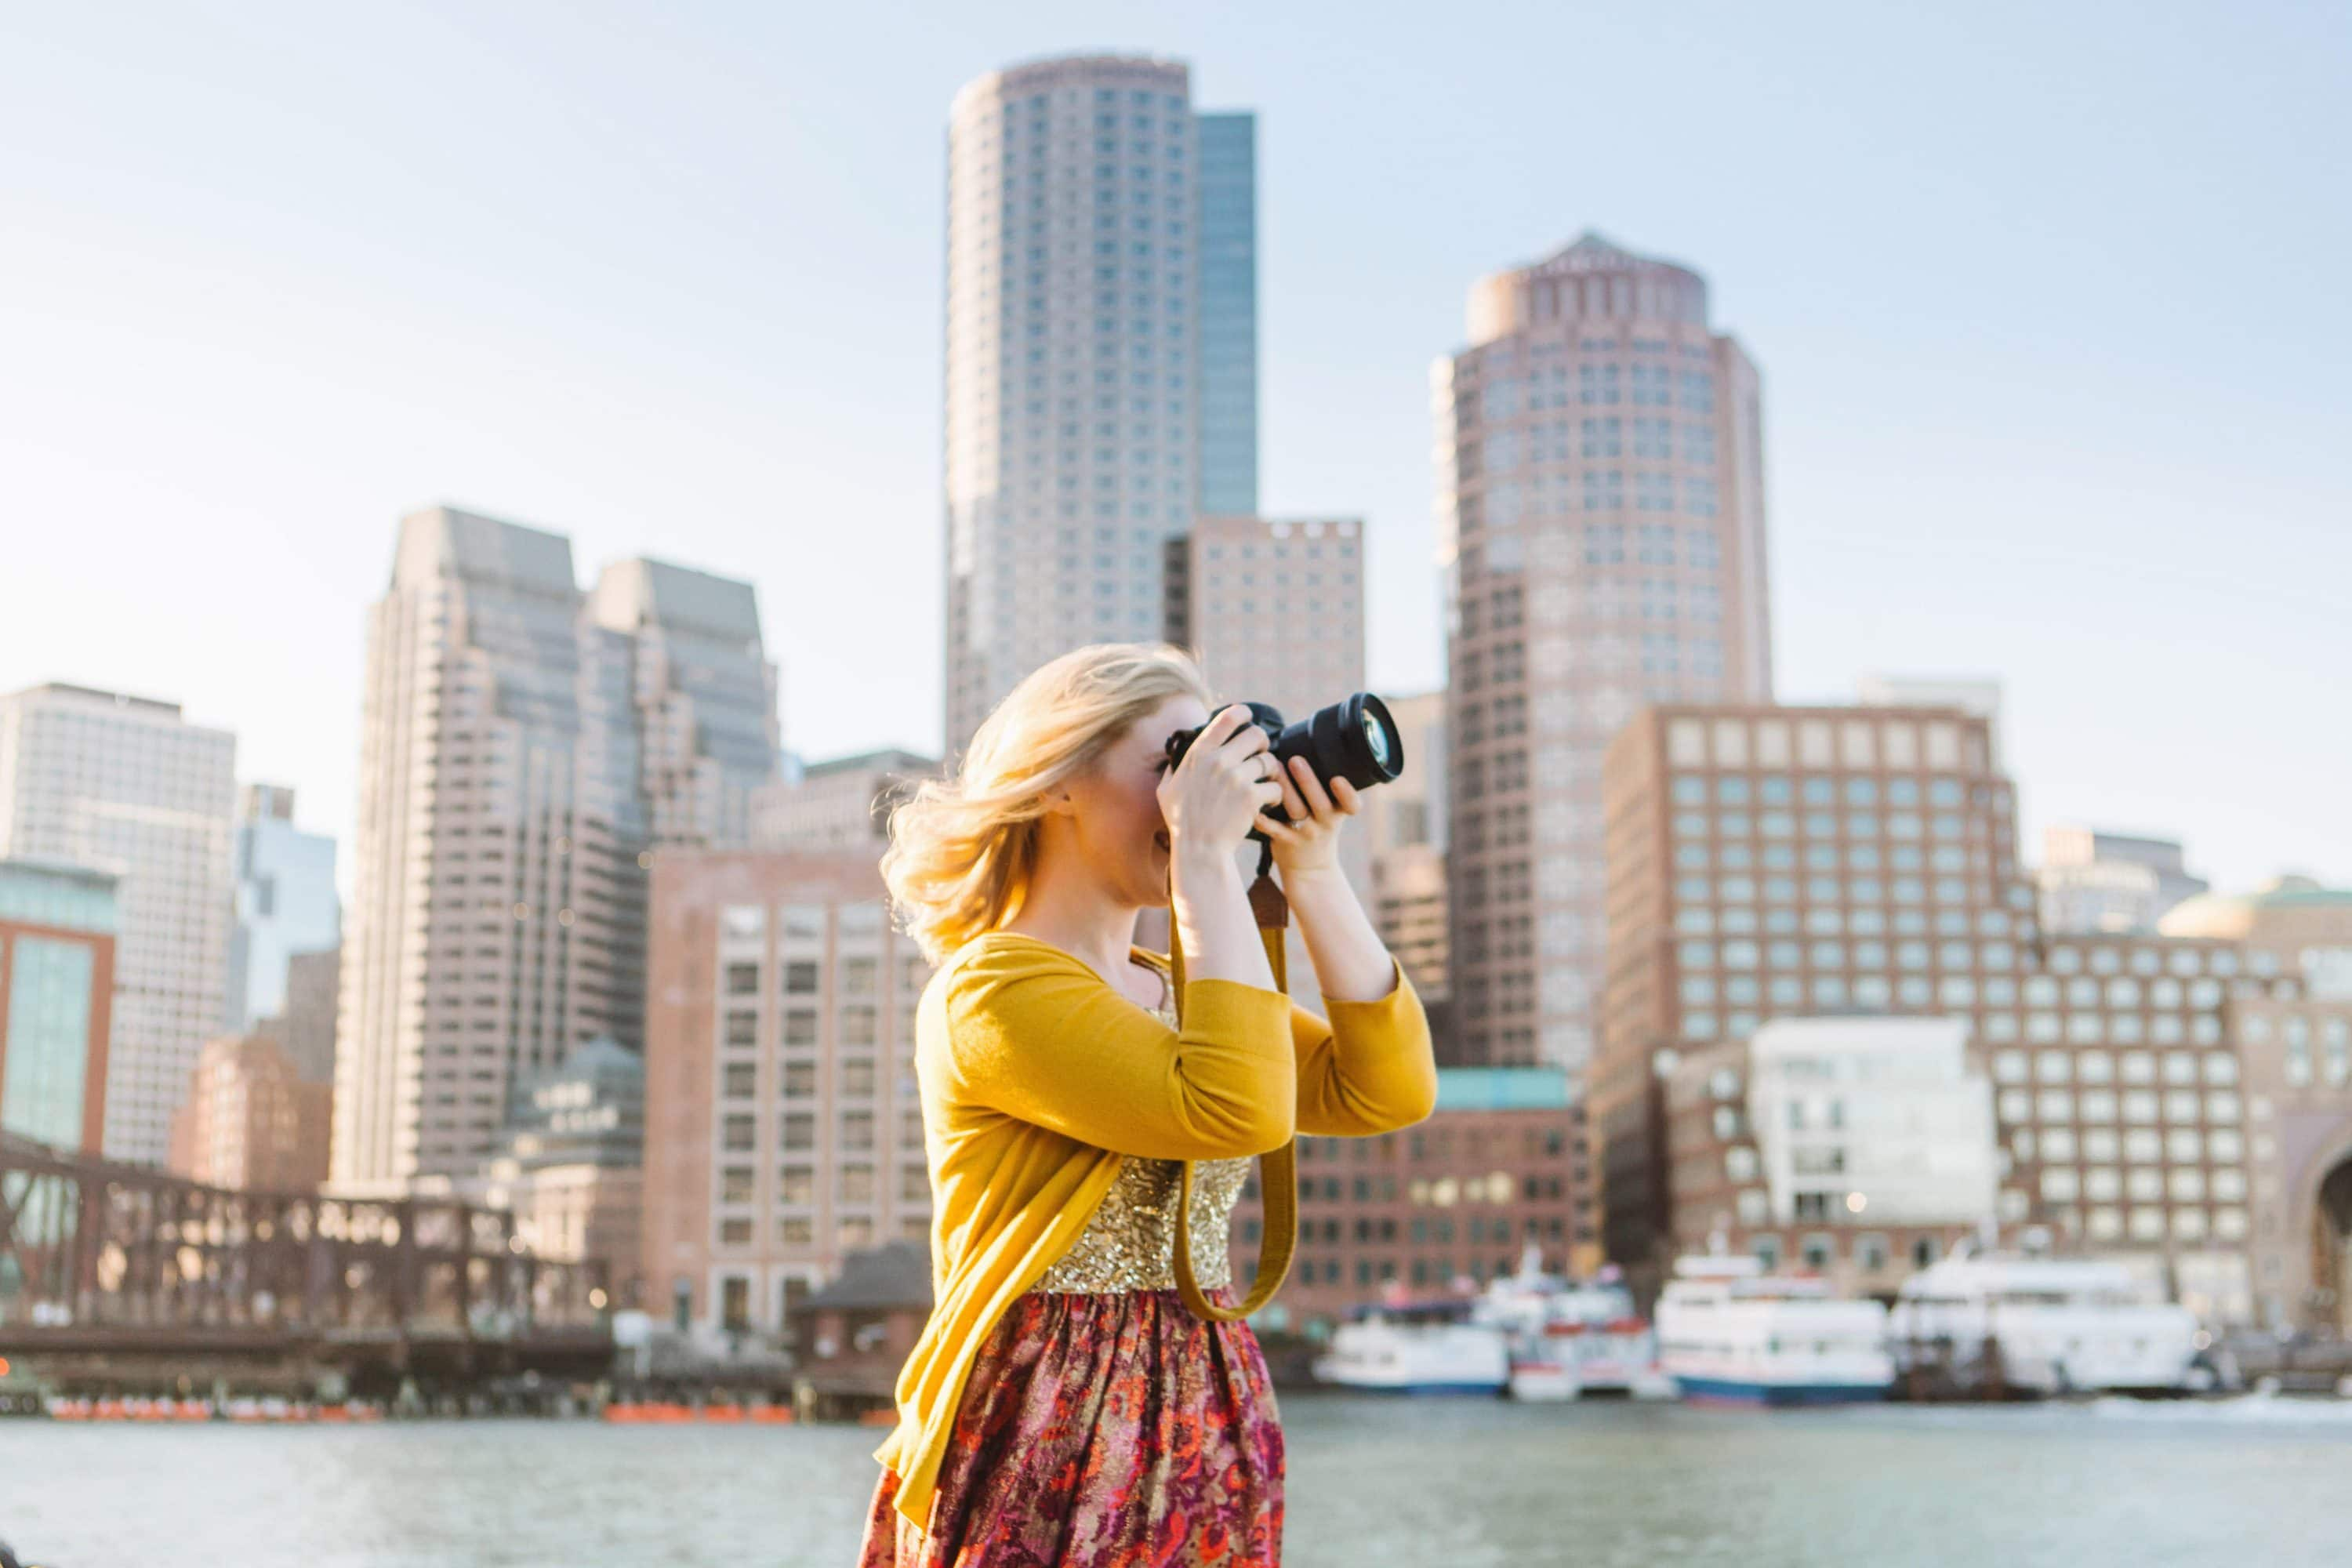 Woman takes photo with Boston backdrop